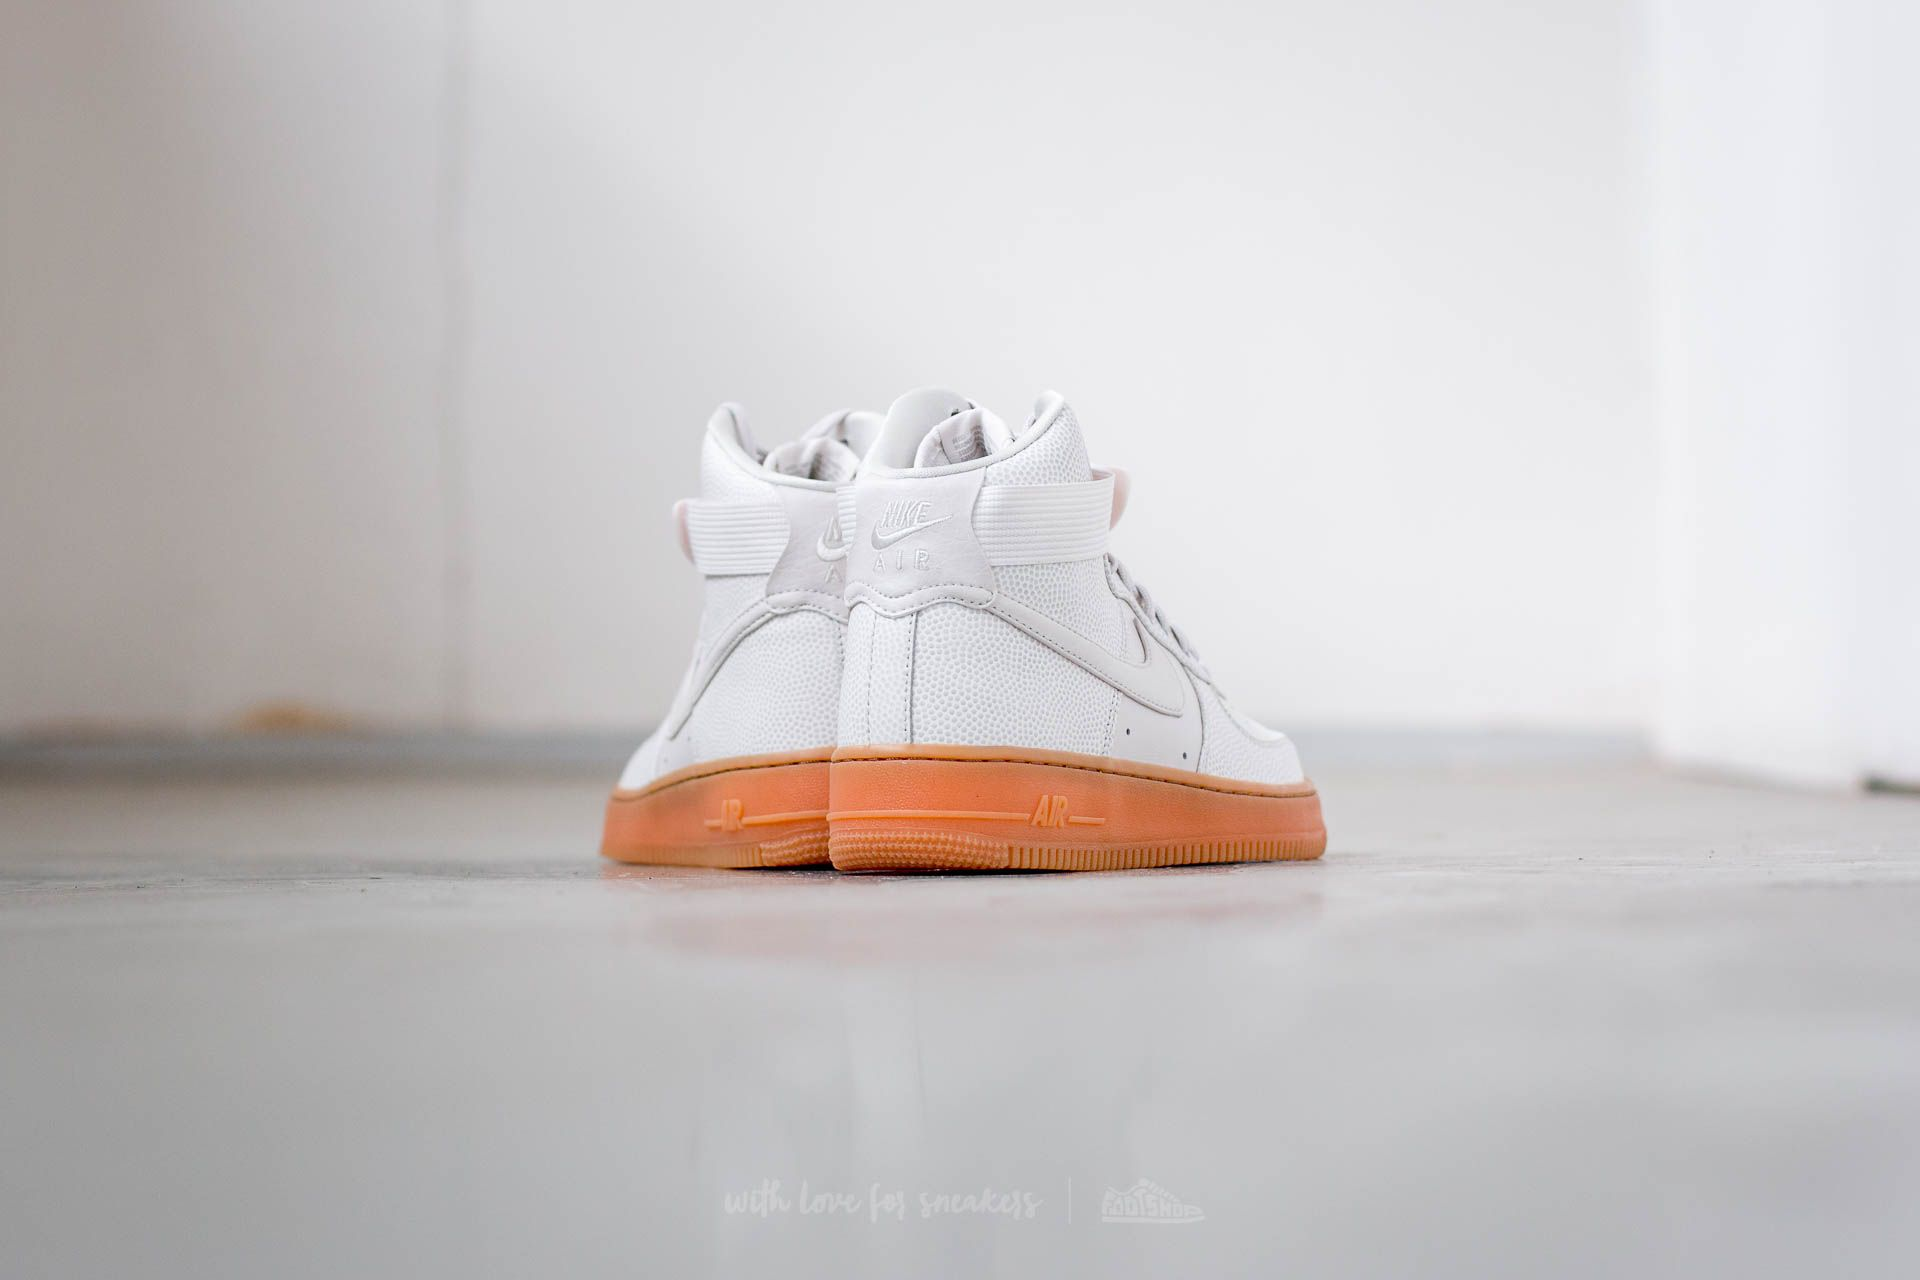 Nike Wmns Air Force 1 High SE Phantom Phantom LT Iron Ore | Footshop